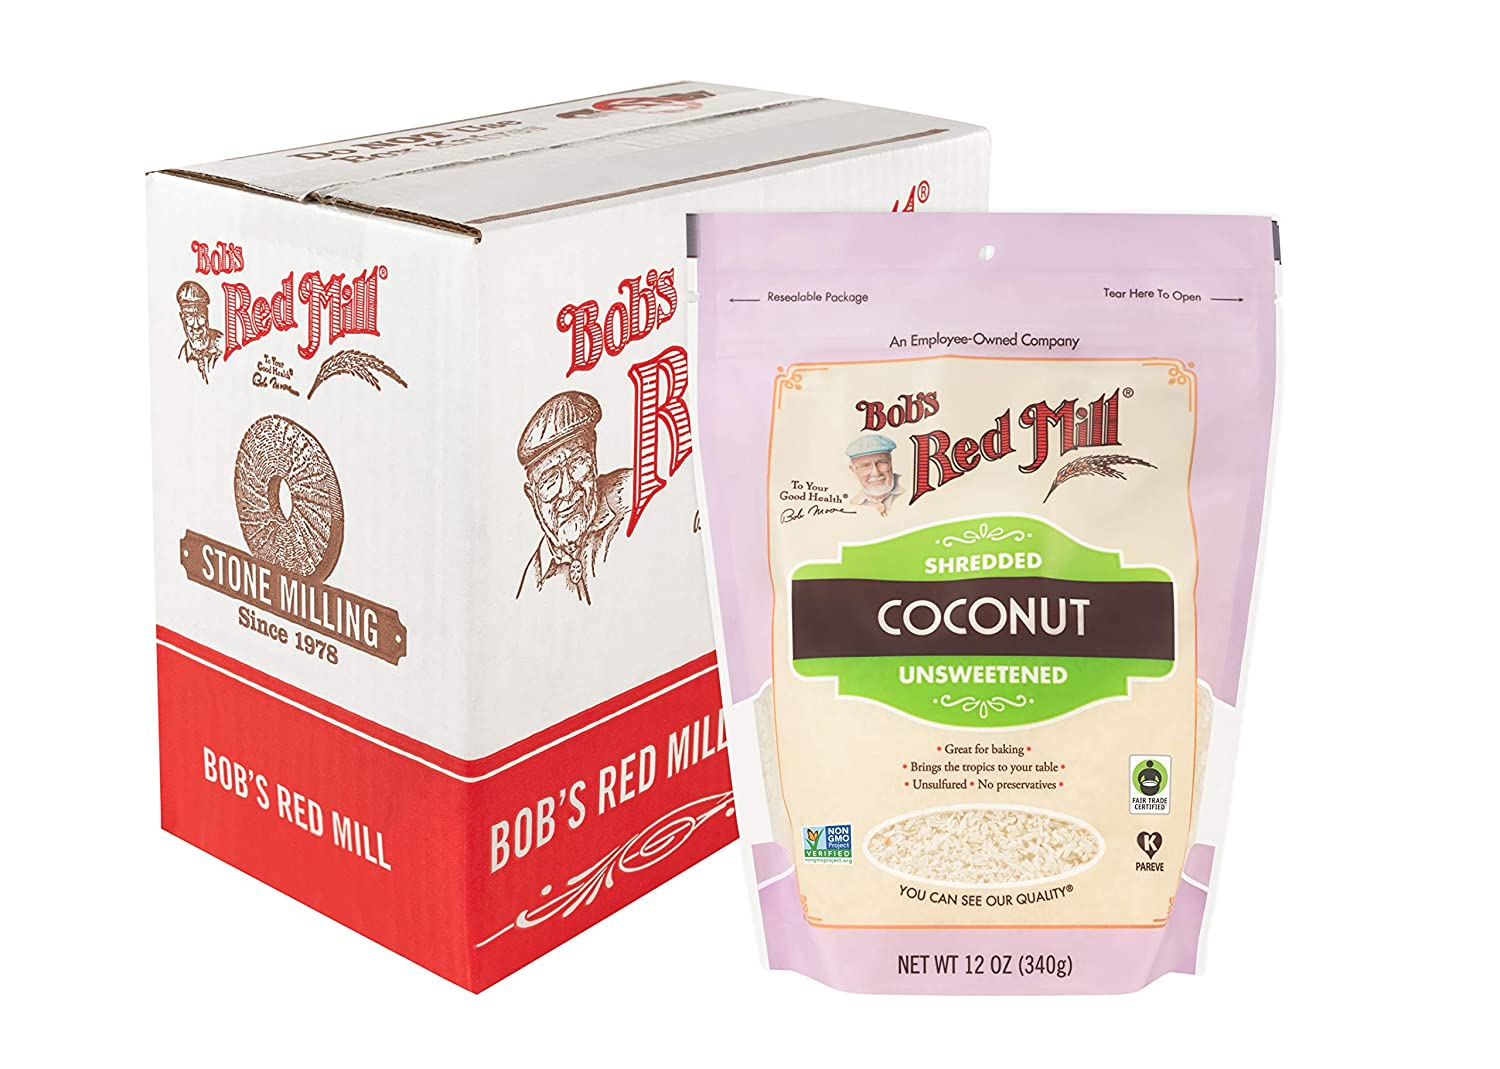 Bob's Red Mill Shredded Coconut (Unsweetened), 12-Ounce (Pack of 4, Stand up Pouch)